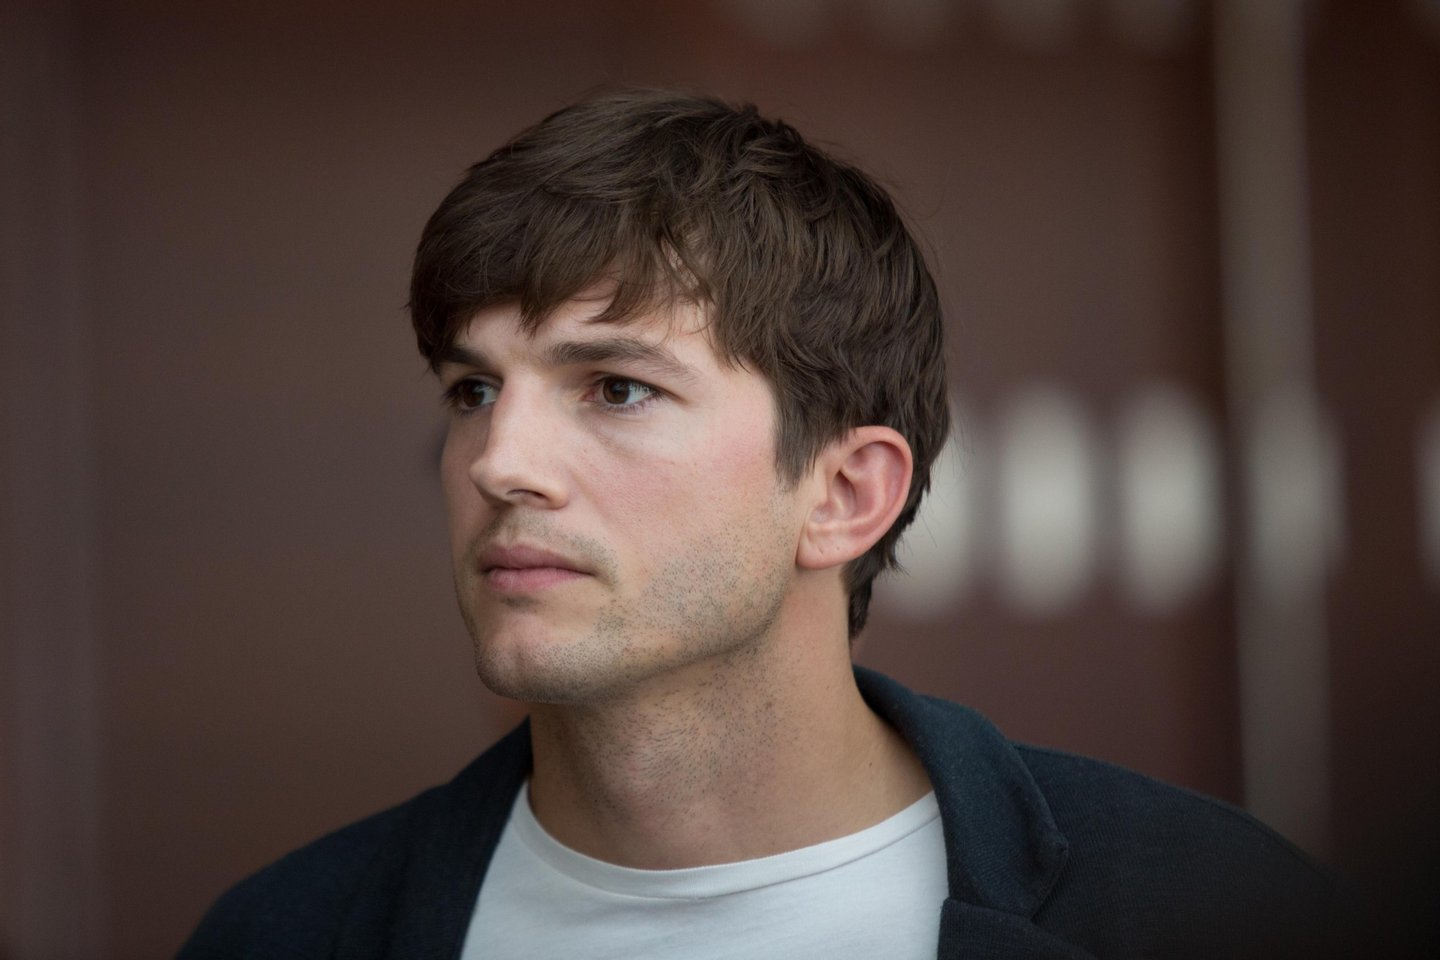 """BEIJING, CHINA - AUGUST 25: (CHINA OUT) Actor Ashton Kutcher attends """"Jobs"""" press conference at National Convention Center on August 25, 2013 in Beijing, China. (Photo by VCG/VCG via Getty Images)"""